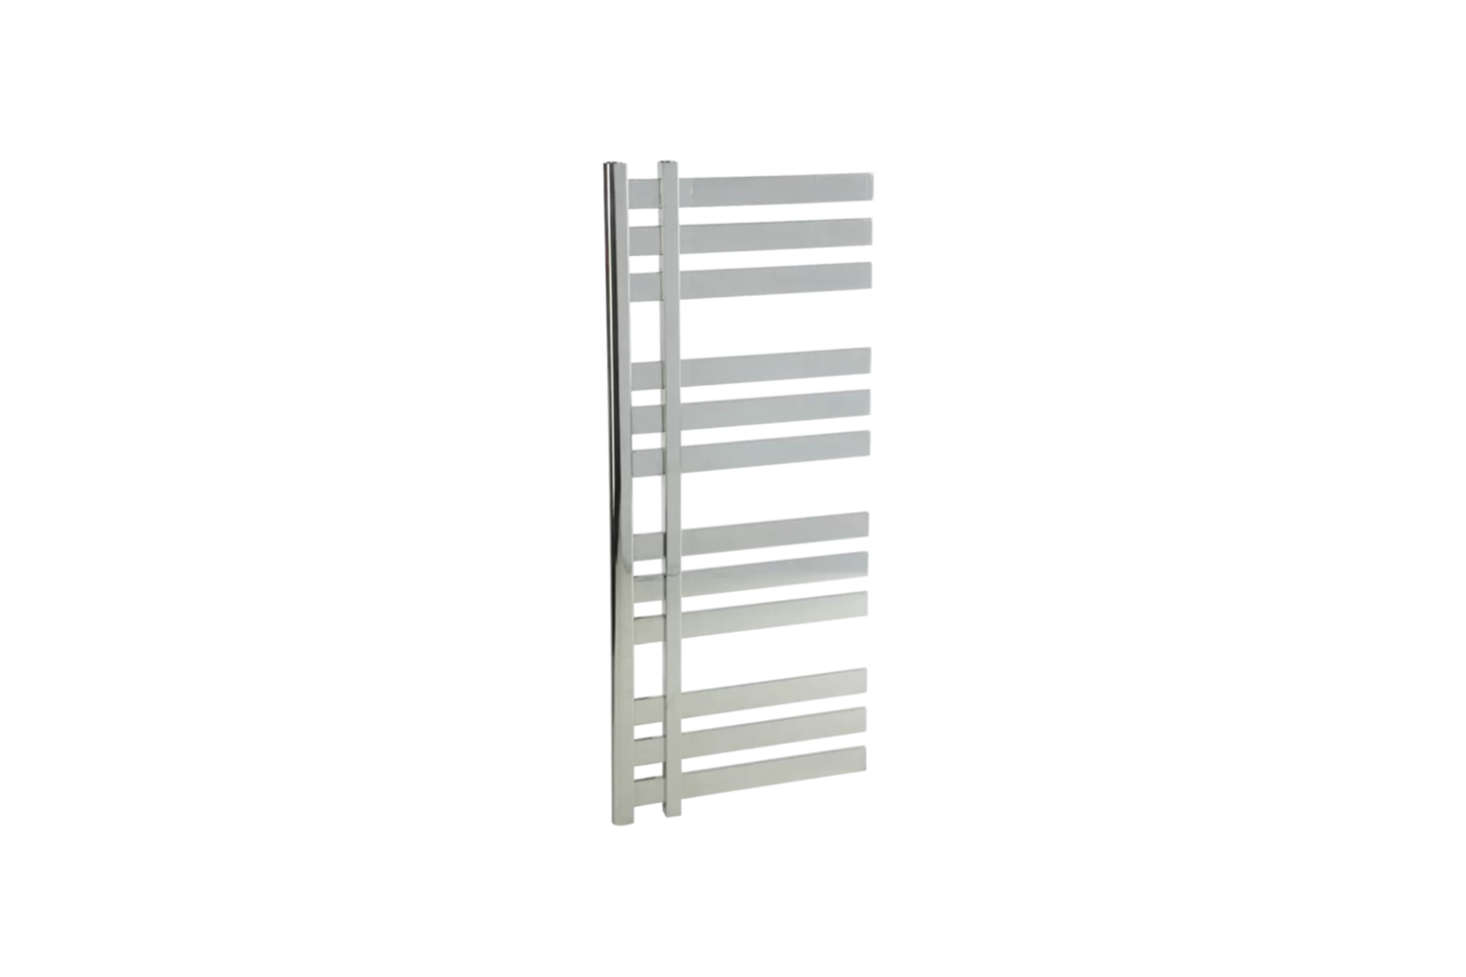 Another style from Artos, the Lioni Mount Electric Towel Warmer (MS12250P-CH) comes in Polished Nickel, Brushed Nickel, or Chrome (shown) for $1,549.99 at Wayfair.